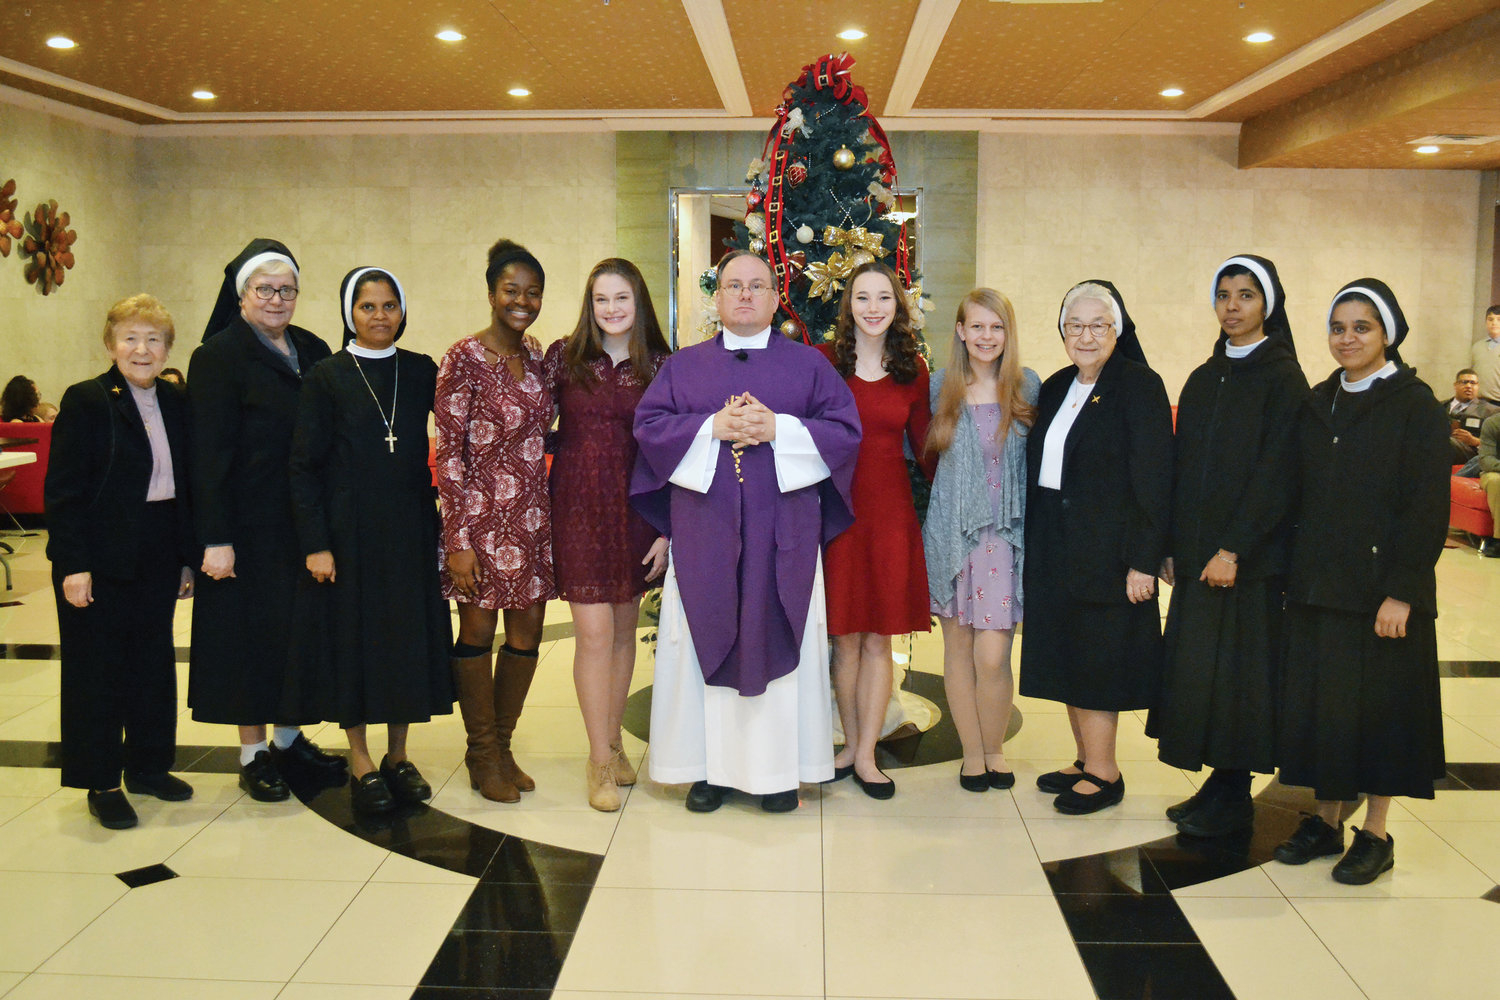 The new officers of the Pallottine Teenage Federation join the Pallottine Sisters and Father Michael Martine, center, at the 57th annual PTAF conference at Honor's Haven Resort & Spa in Ellenville. They are, from left, Sister Carmel Therese Favazzo, C.S.A.C.; Sister Patricia Gatti, C.S.A.C.; Sister Roseline Jayaraj, C.S.A.C.; Orlean Dubreus, PTAF secretary; Amanda Molloy, PTAF vice president; Father Martine; Veronica Keene, PTAF president; Courtney Nazak, PTAF program chairperson; Sister Ann Joachim, C.S.A.C.; Sister Smija Peter, C.S.A.C.; Sister Laveena Bennis, C.S.A.C.